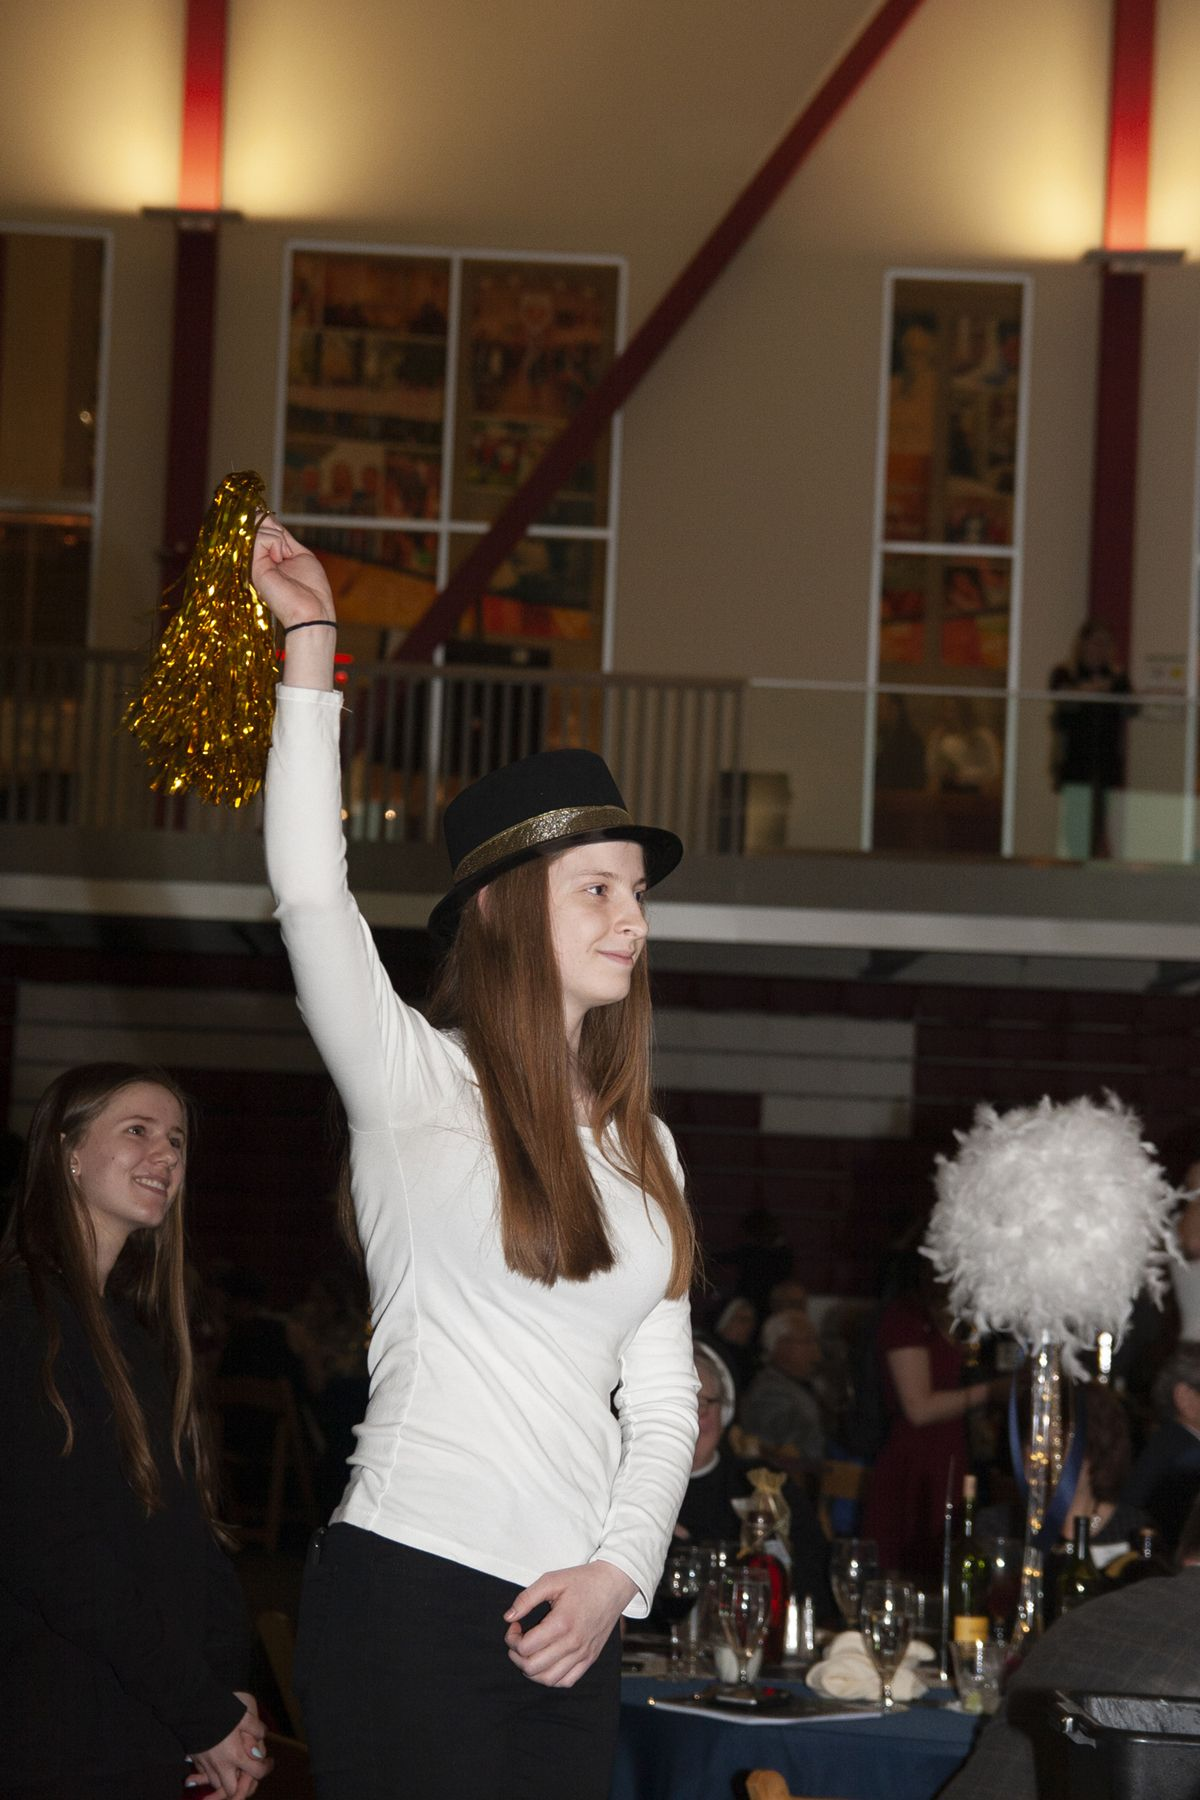 A CJ student raises her pom to indicate a new bid on an item